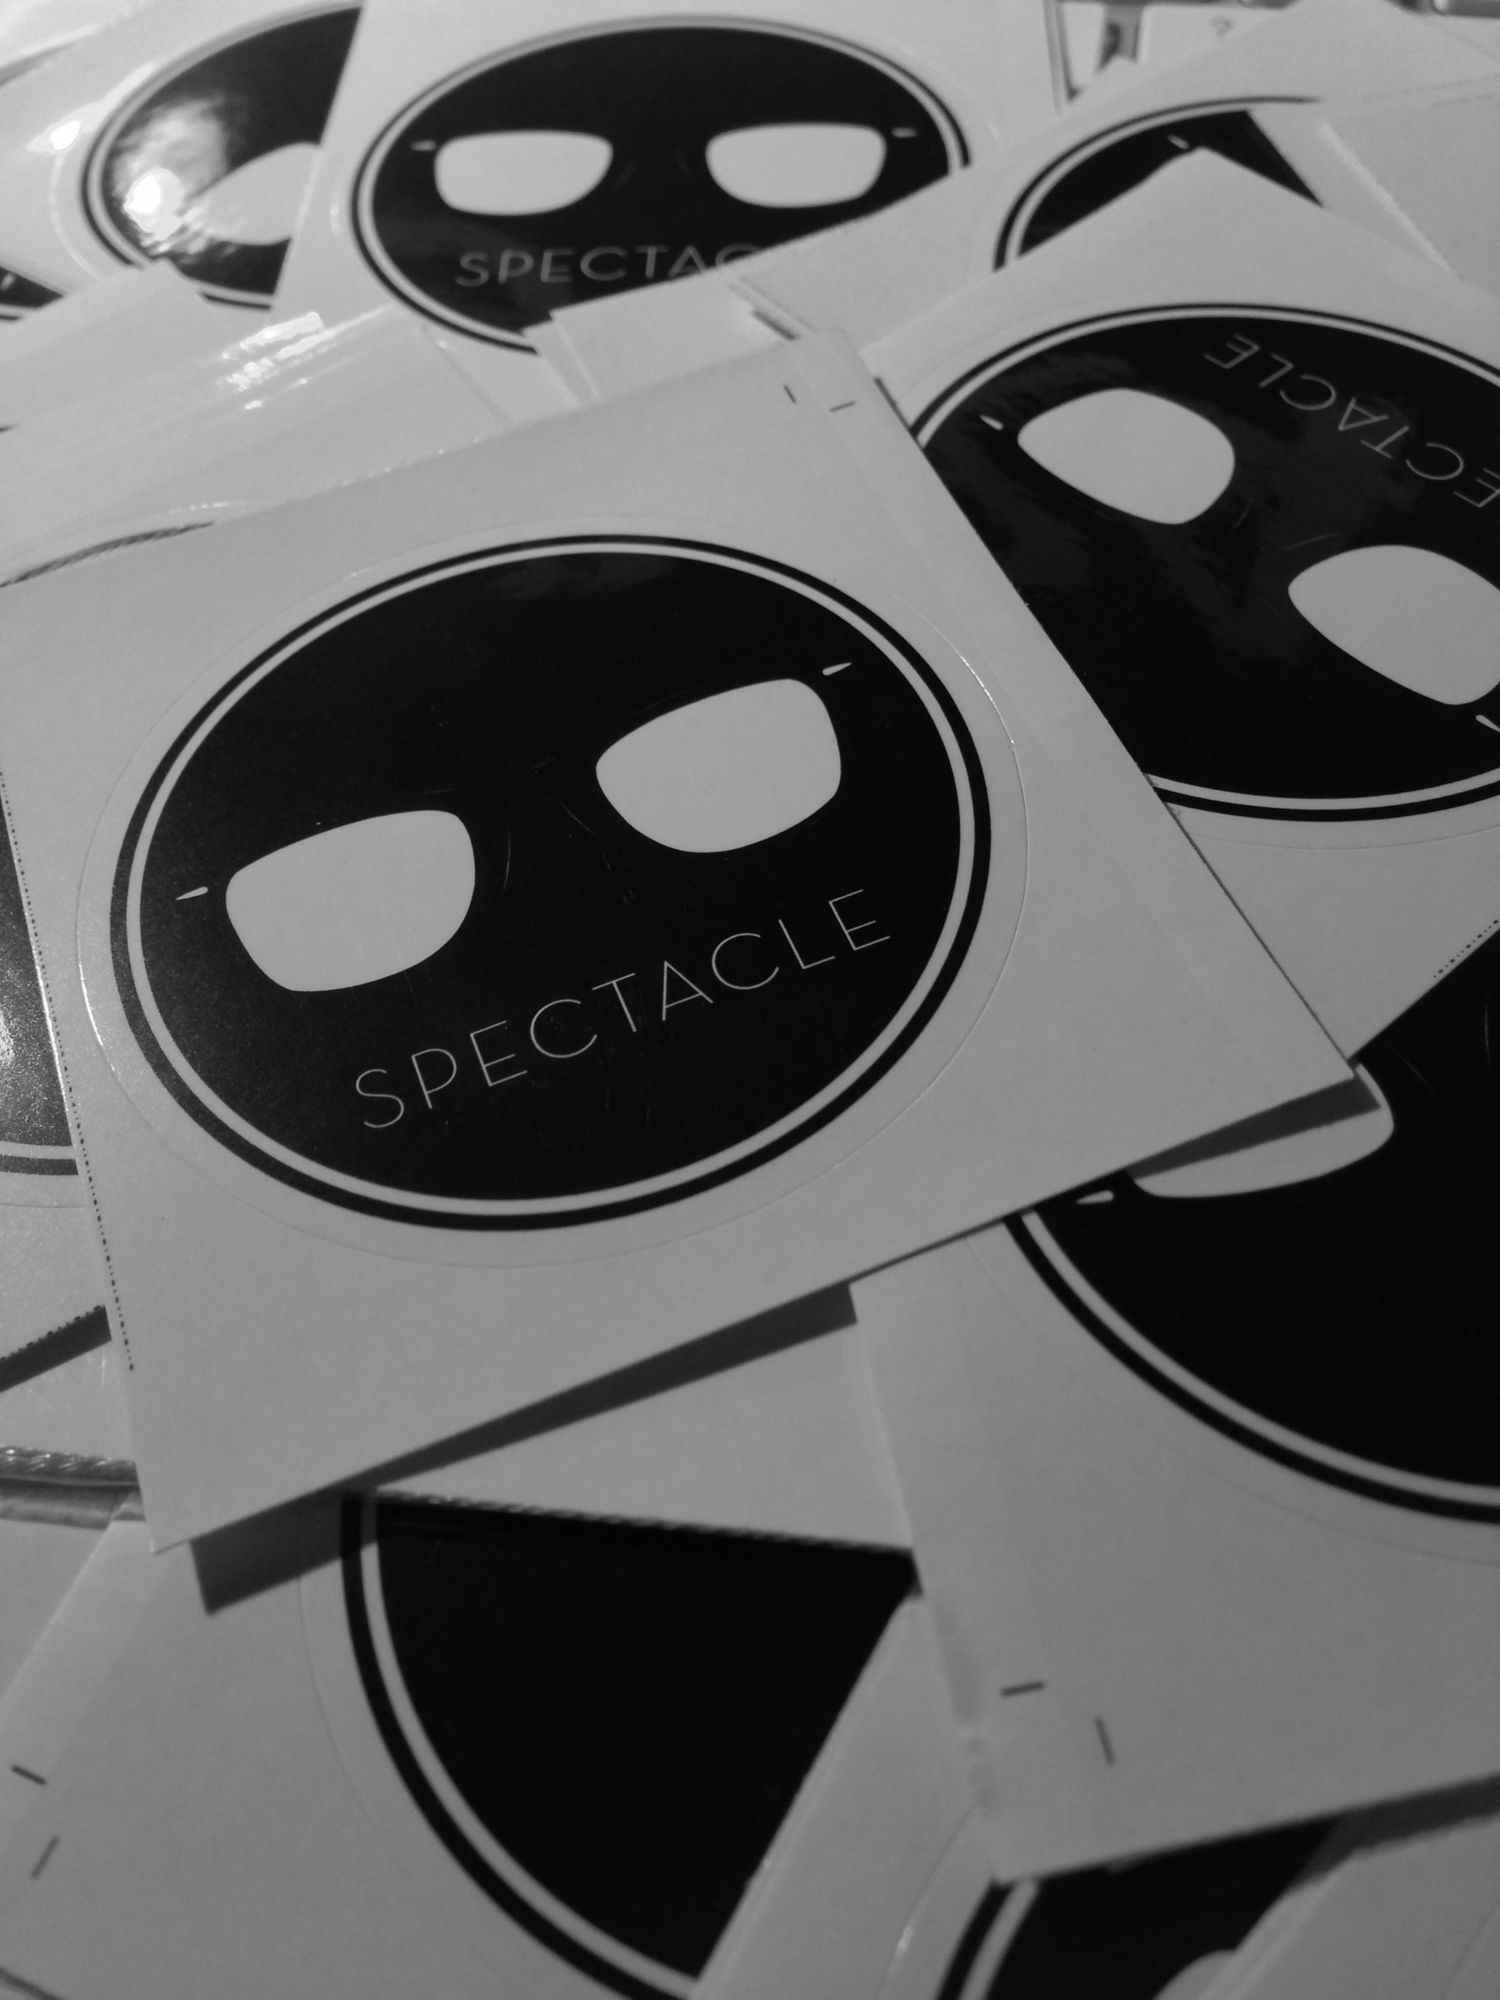 Spectacle stickers!